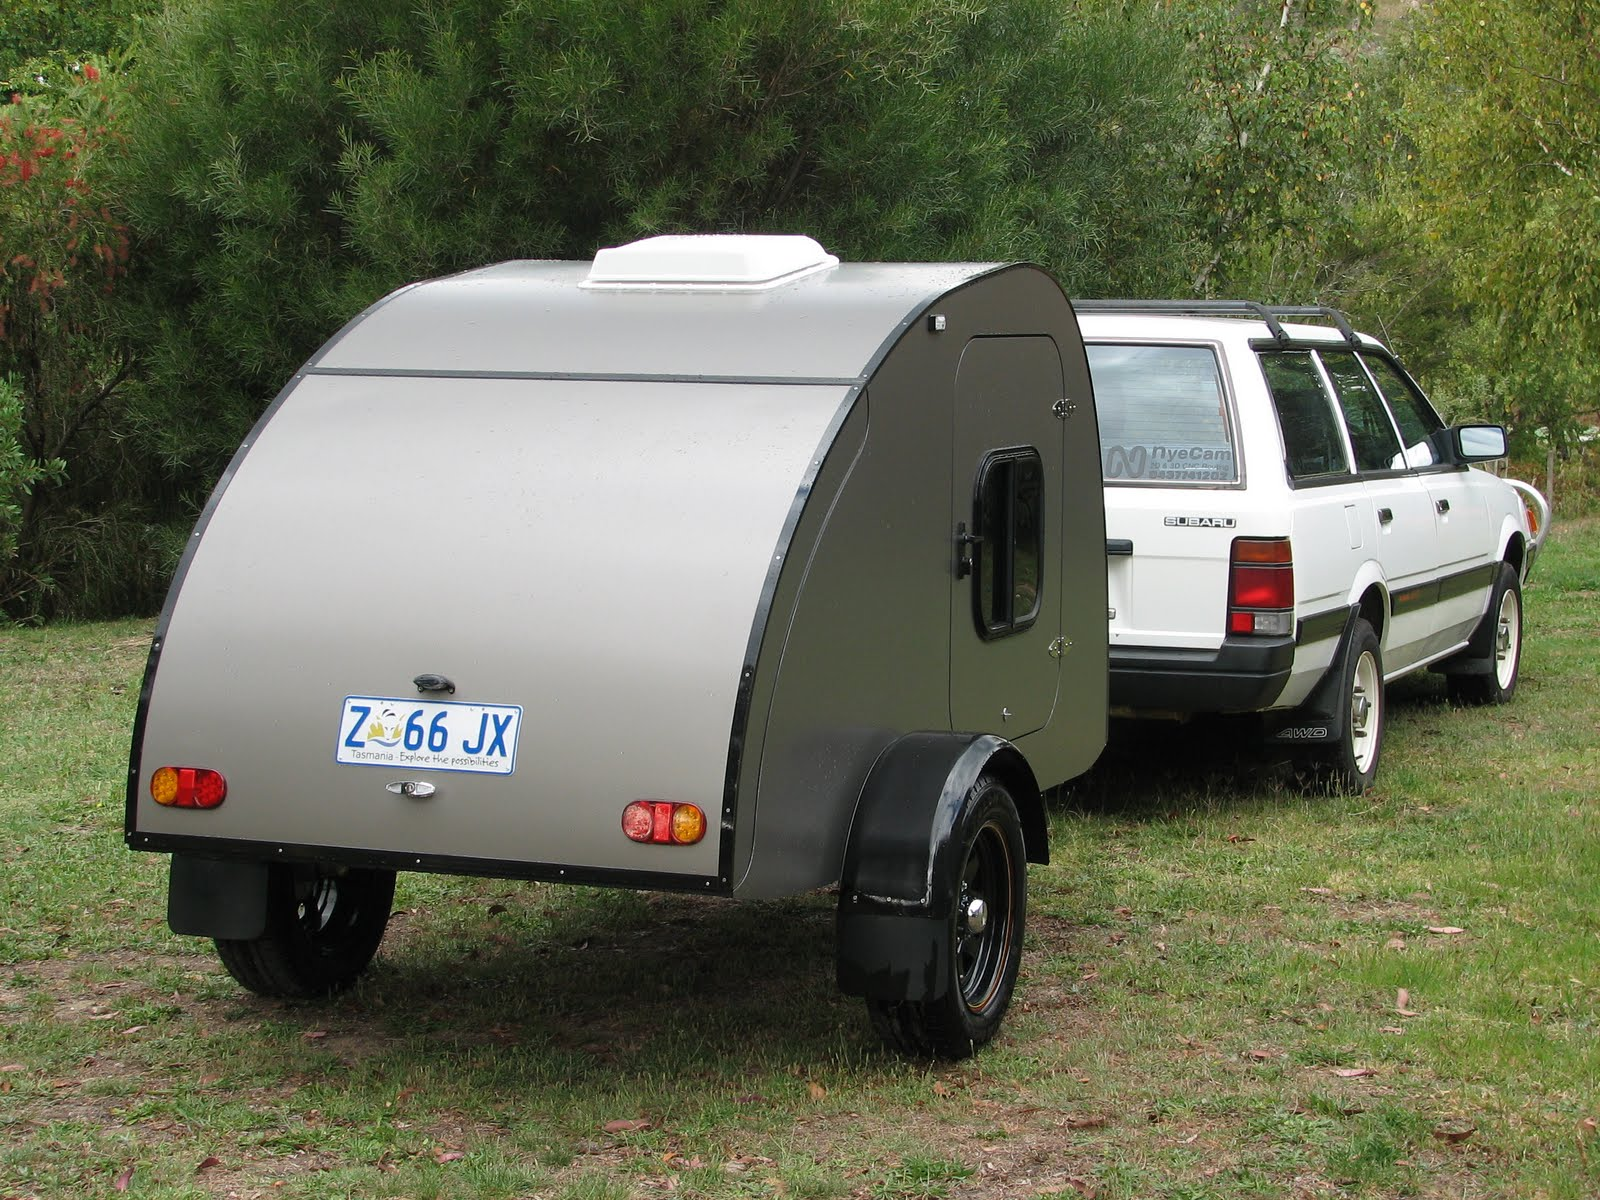 Amazing The Tail Feather Camper  A Modular Camper That Can Be Taken Apart